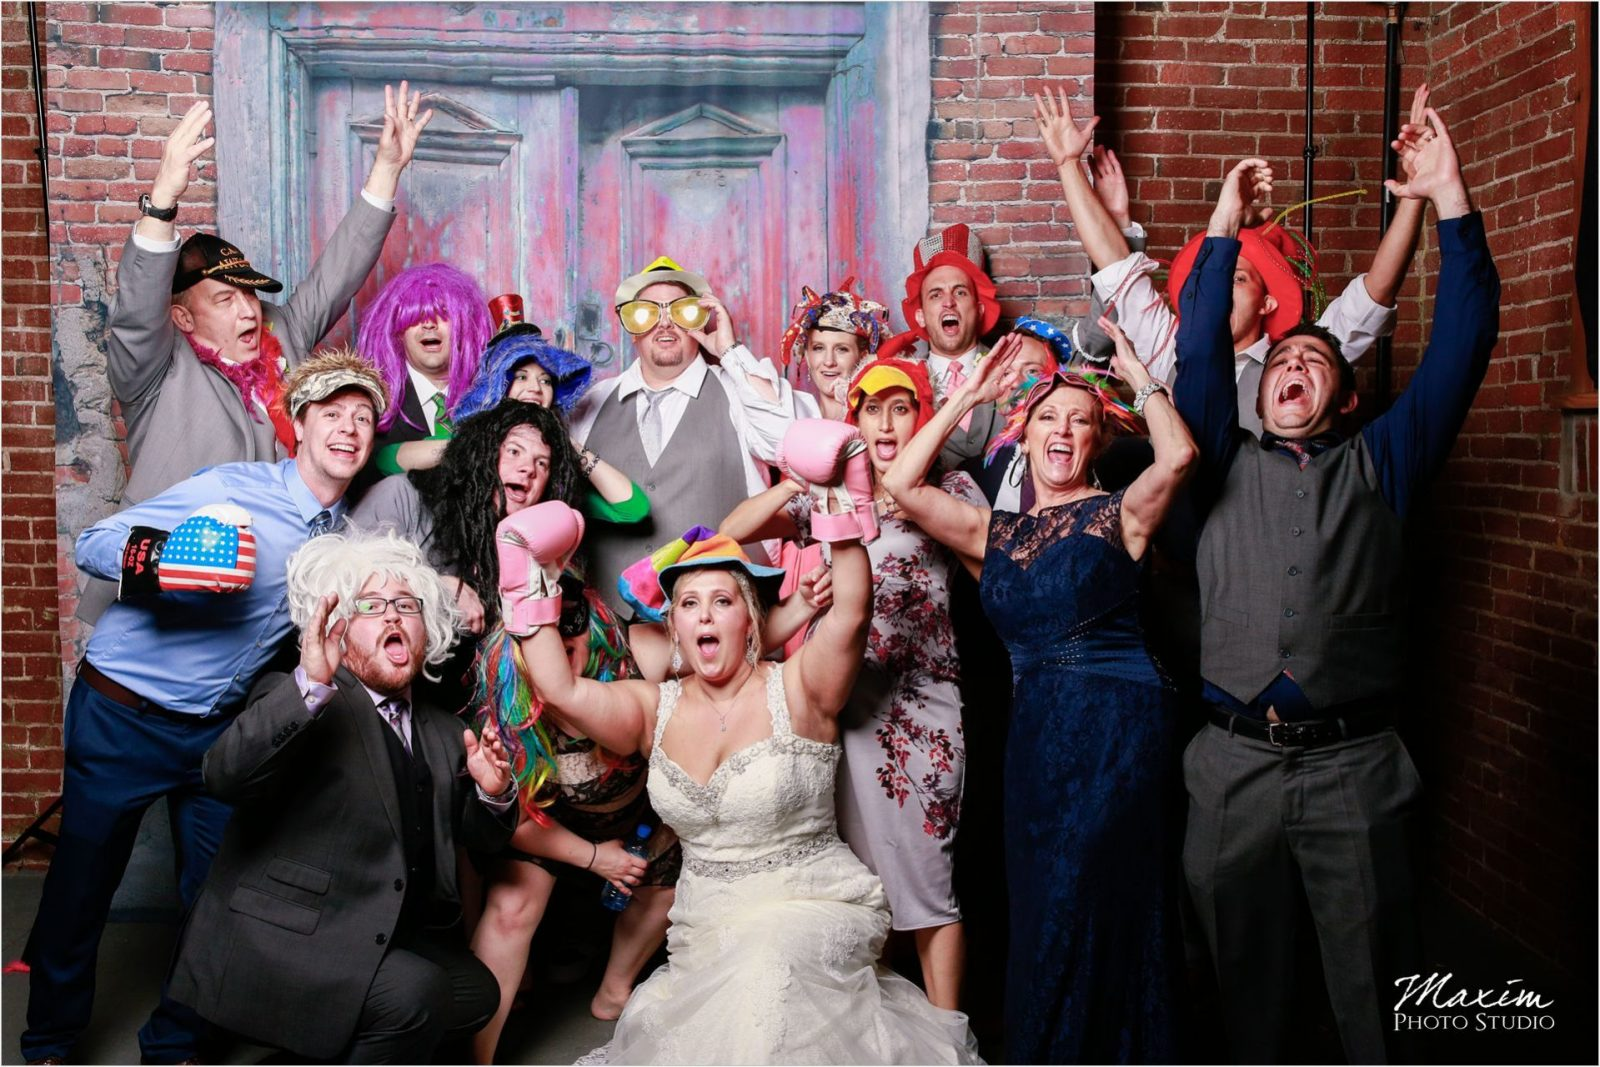 Top of the Market Dayton Ohio Wedding Reception photo booth